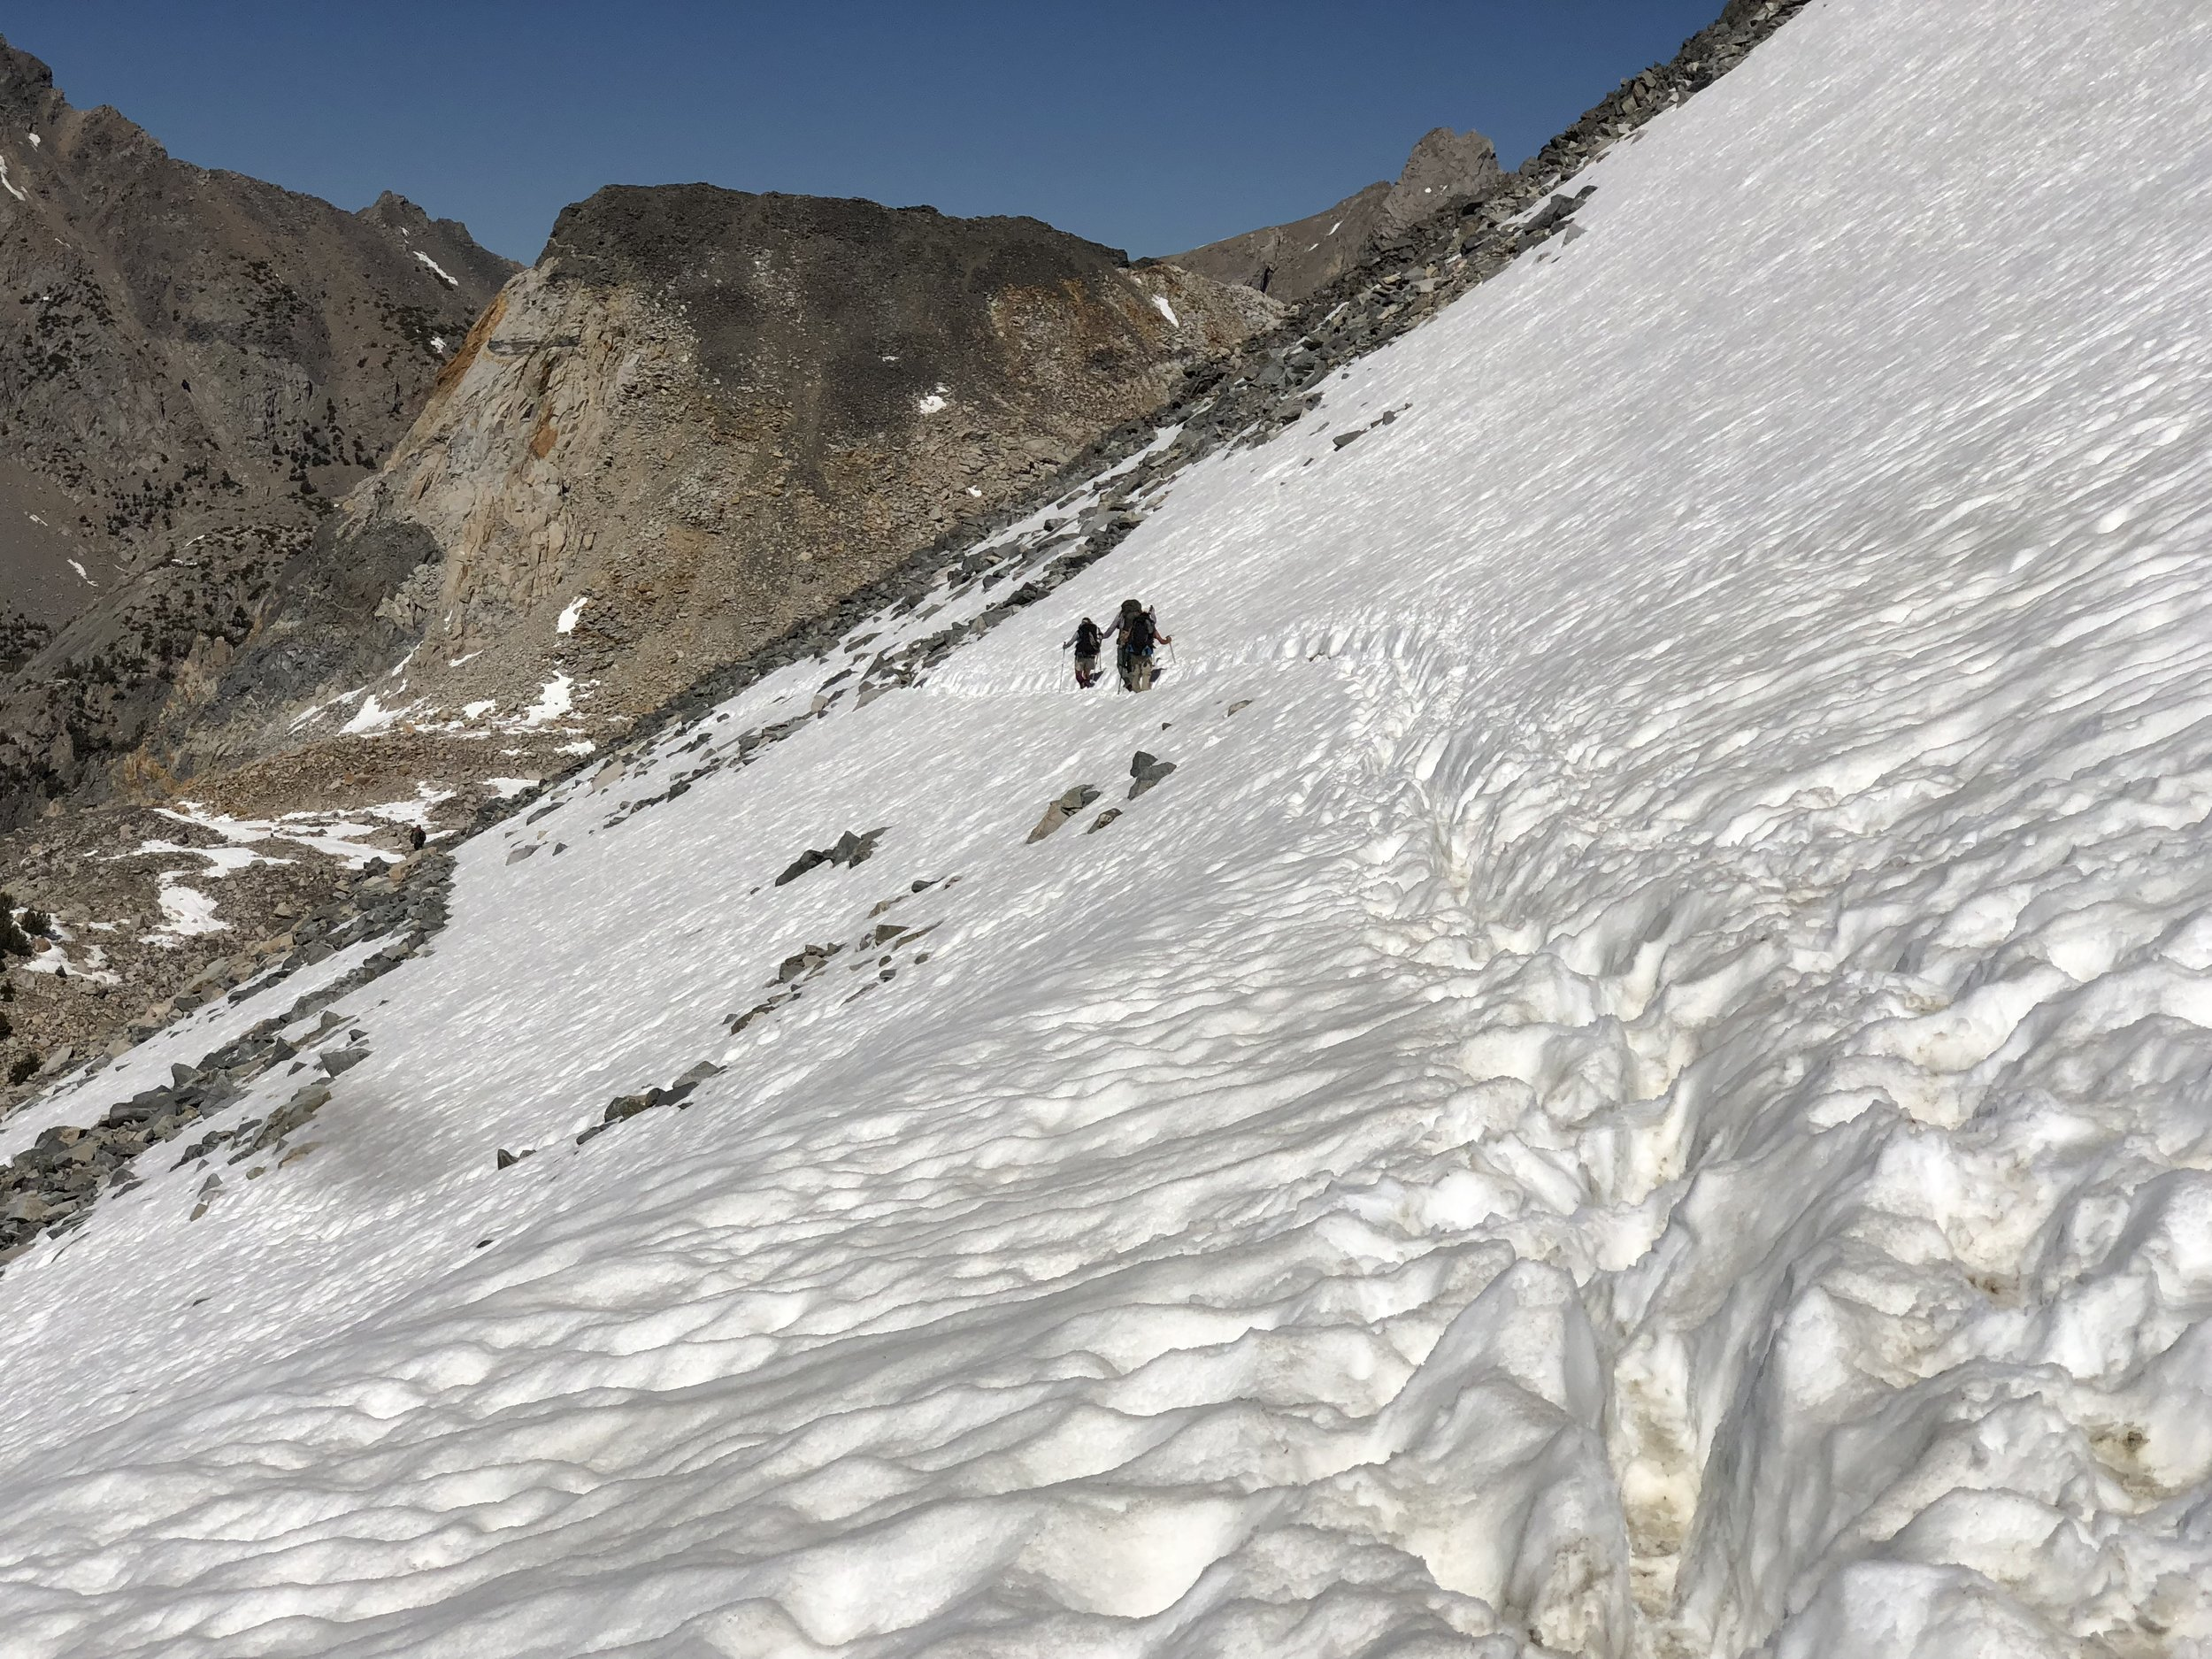 Trekking across snow at Glen Pass